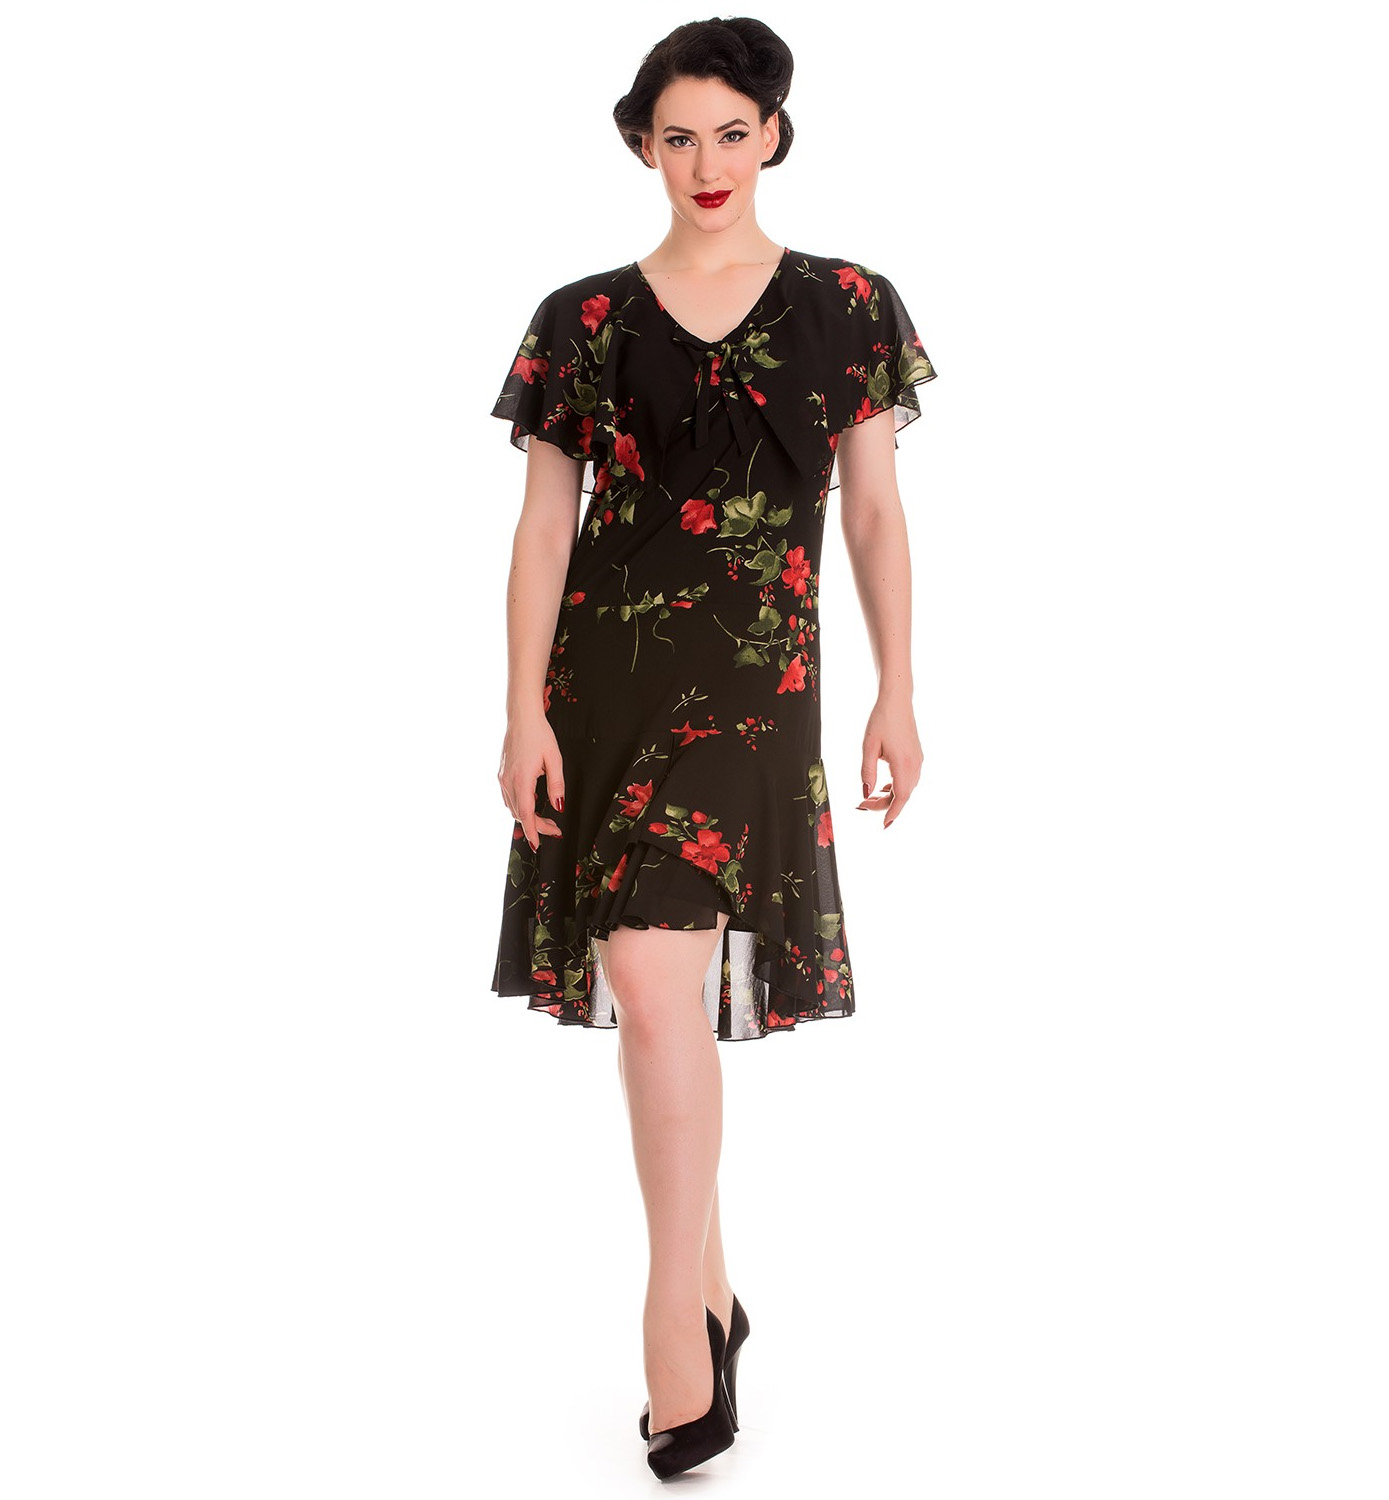 Hell-Bunny-20s-40s-Black-Flapper-Cocktail-Party-Dress-LILY-Floral-Black-All-Size thumbnail 7